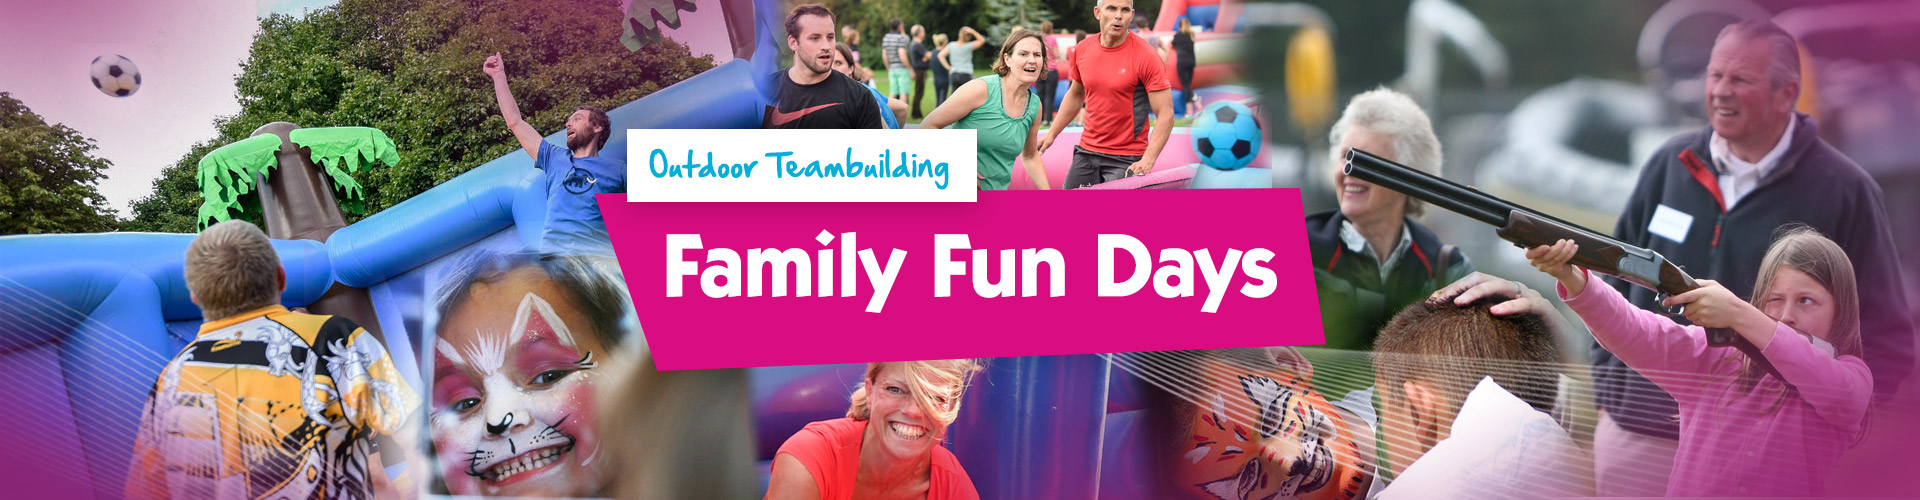 STeambuilding | Family Fun Days